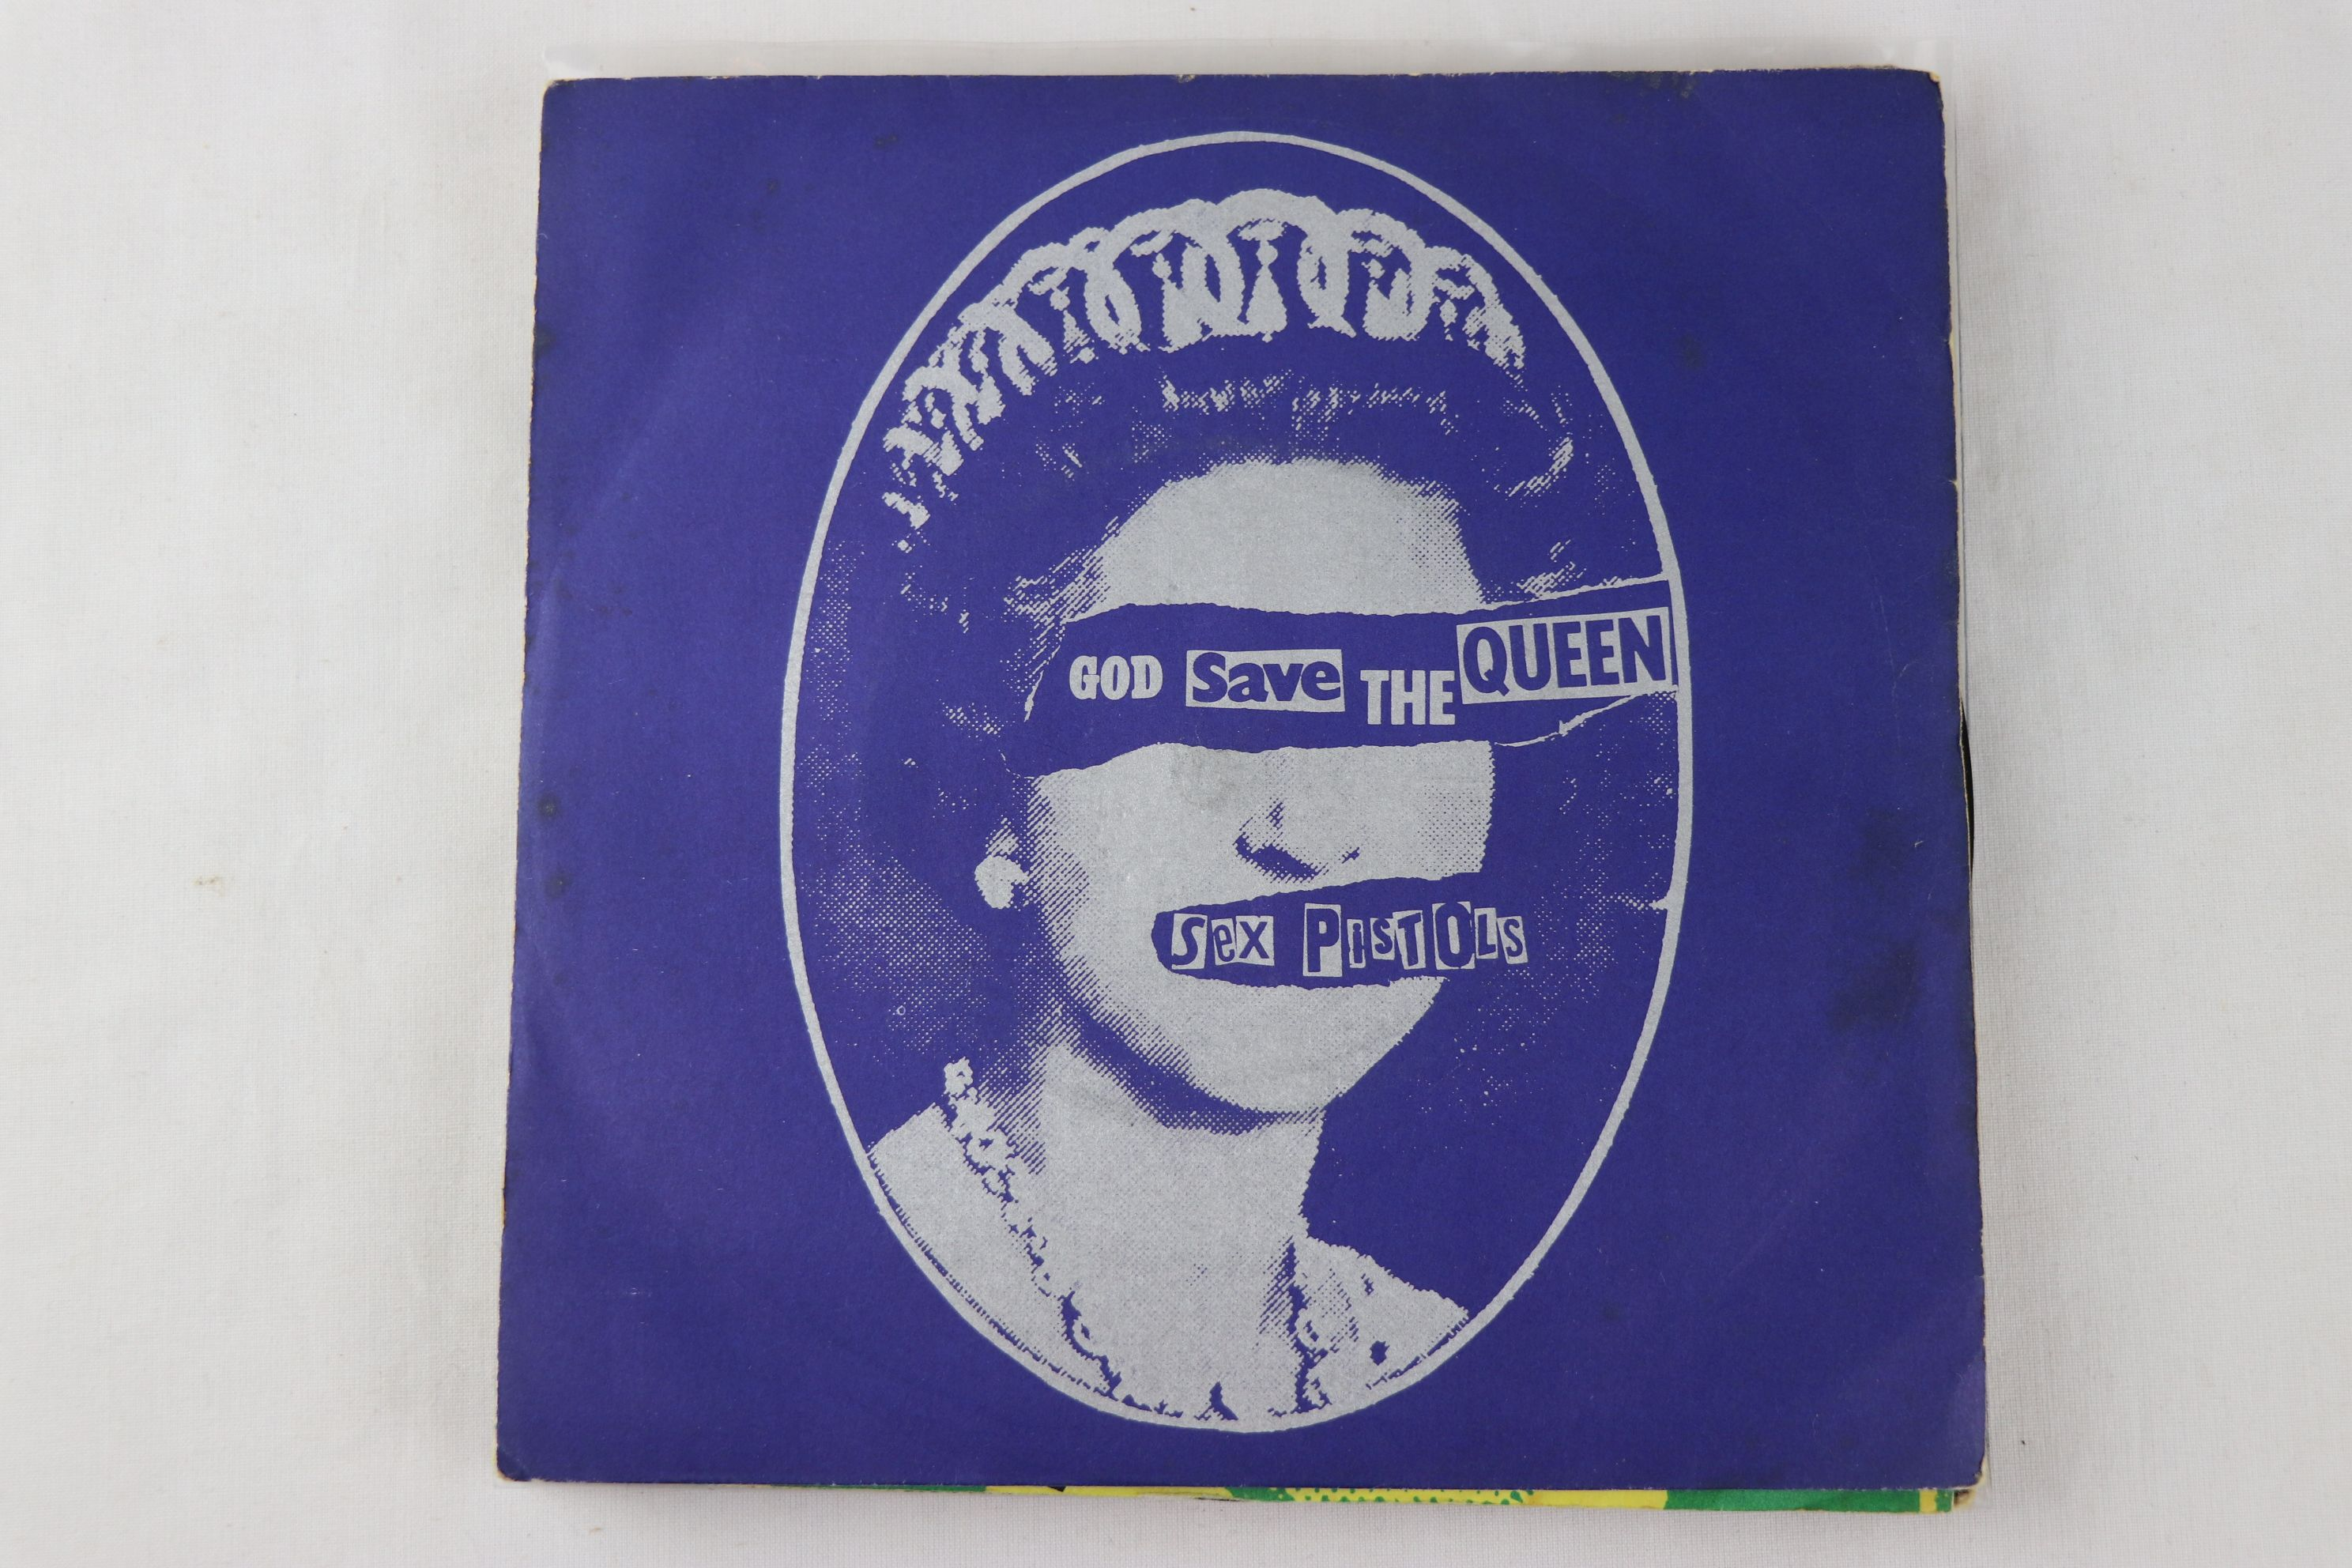 PUNK - SEX PISTOLS - PACK OF 7 ORIGINAL PRESSING SINGLES. 1. GOD SAVE THE QUEEN, 1977 VIRGIN RECORDS - Image 2 of 8